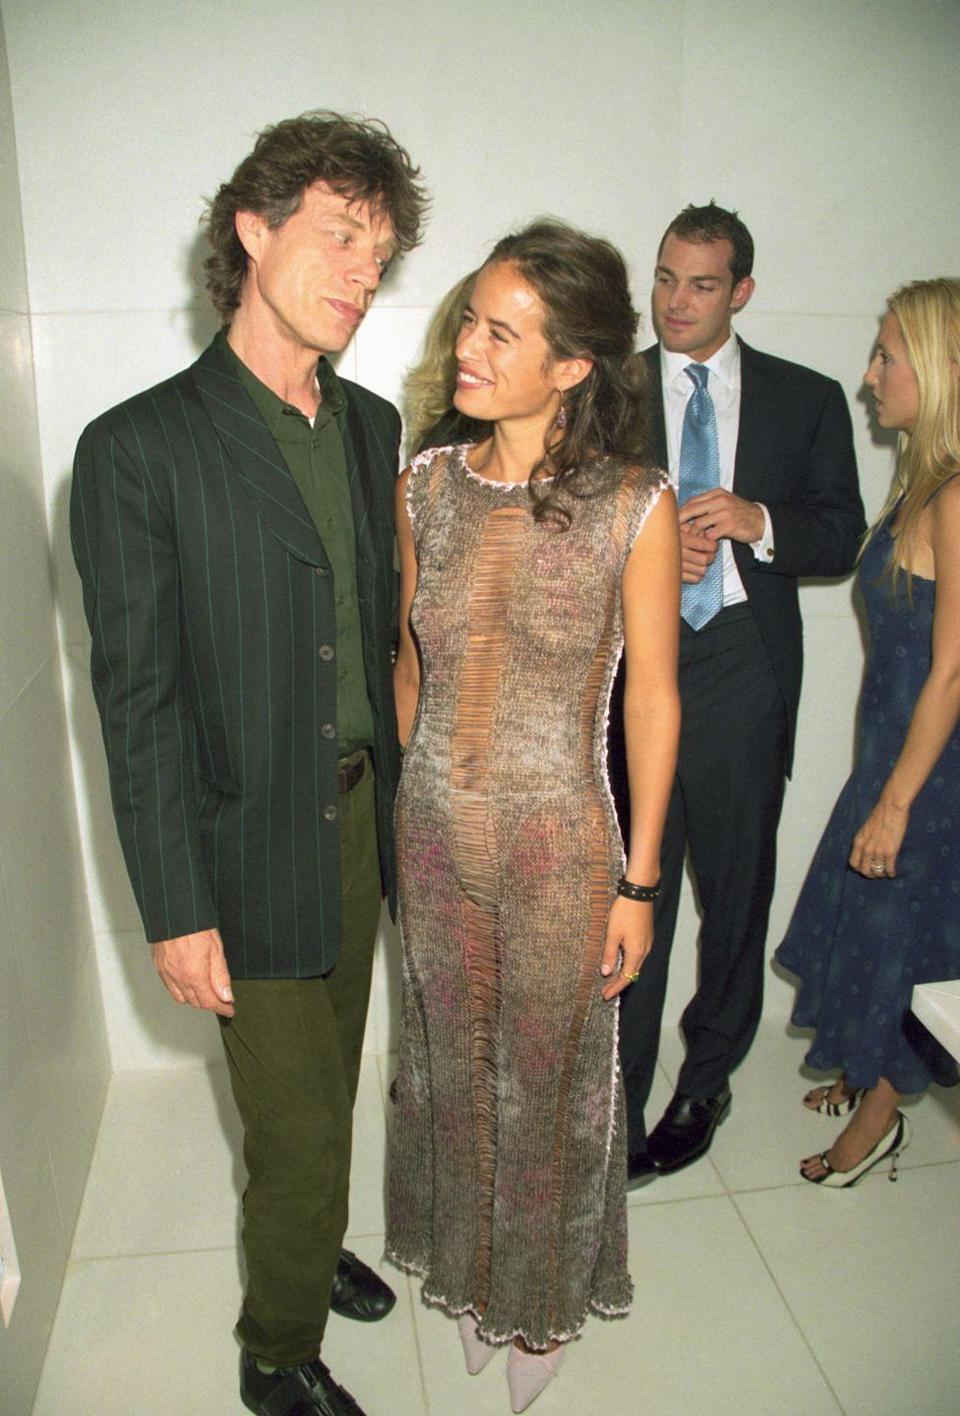 <p>Mick Jagger attends the launch of his daughter Jade's jewelry collection in London in 1999. Jade is the only child Mick shares with his first wife, Bianca Jagger. </p>